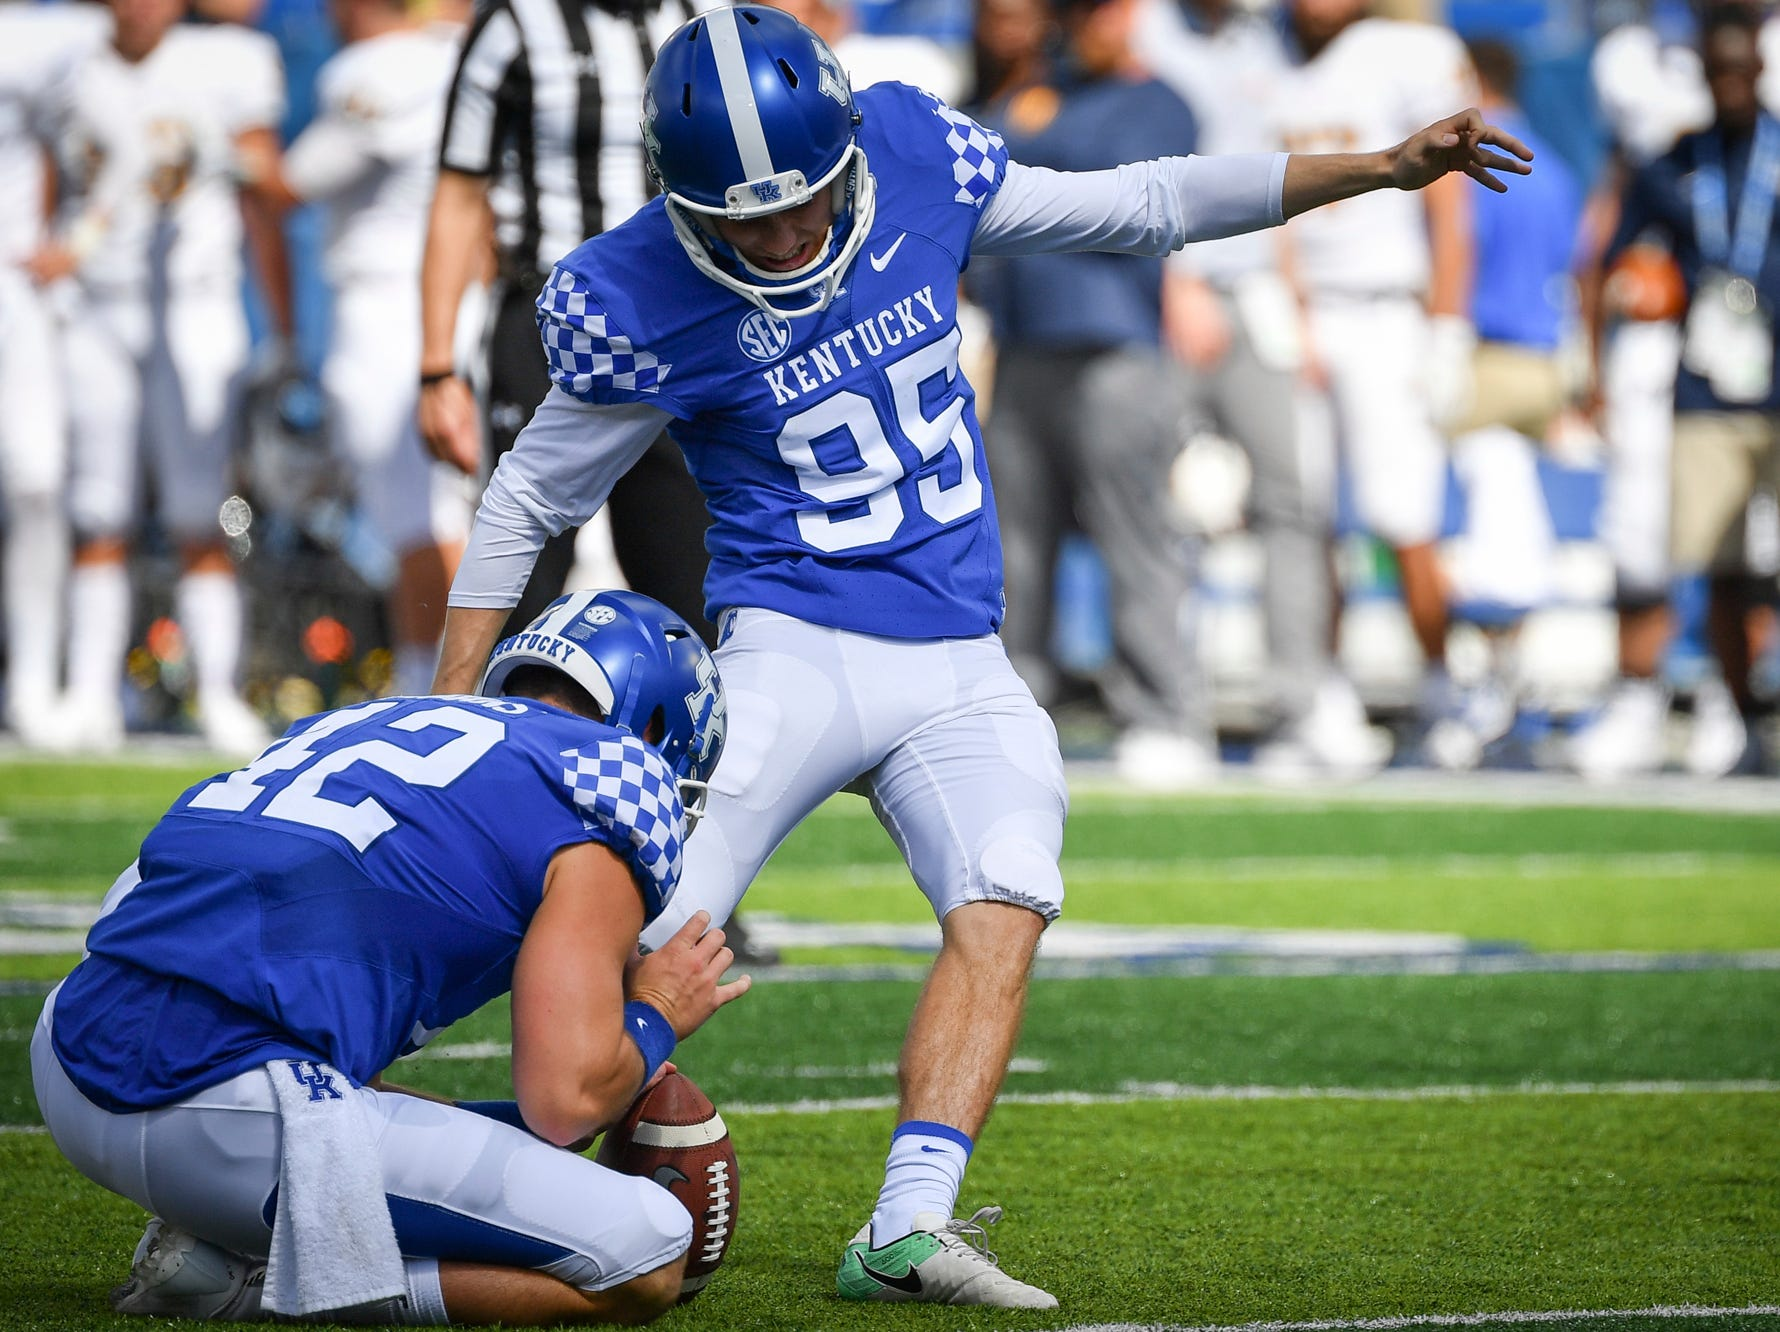 Kentucky Wildcats place kicker Miles Butler (95) kick a point after try during the first half an NCAA college football game against Murray State in Lexington, Ky., Saturday, Sept. 15, 2018.